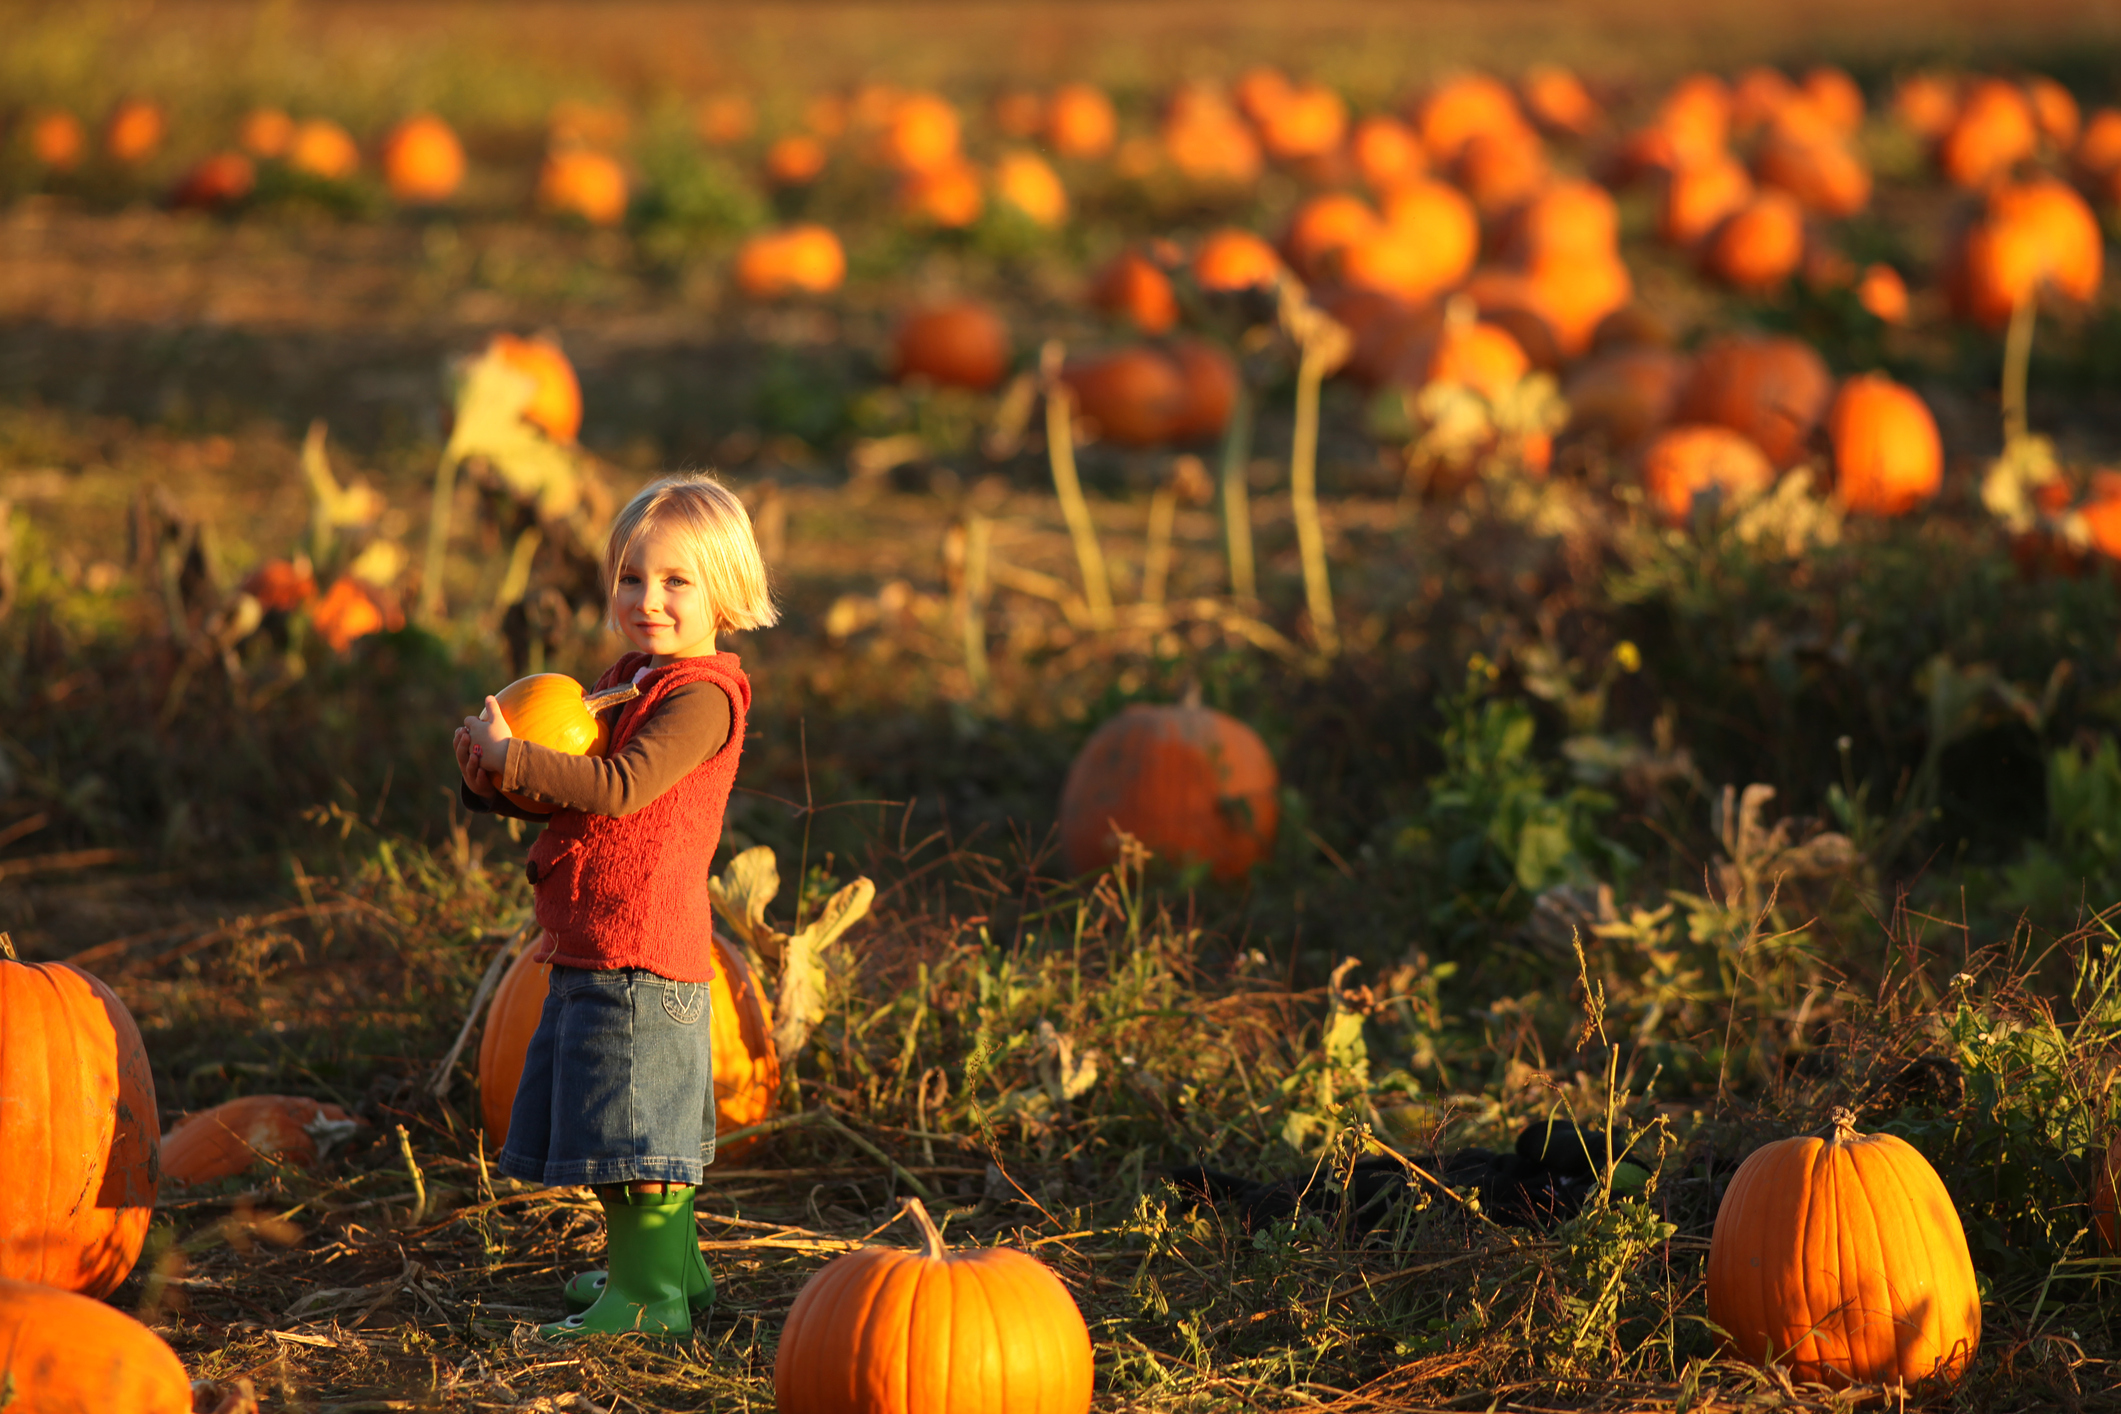 Insta-Worthy Autumn Activities Your Family and Followers Will Love